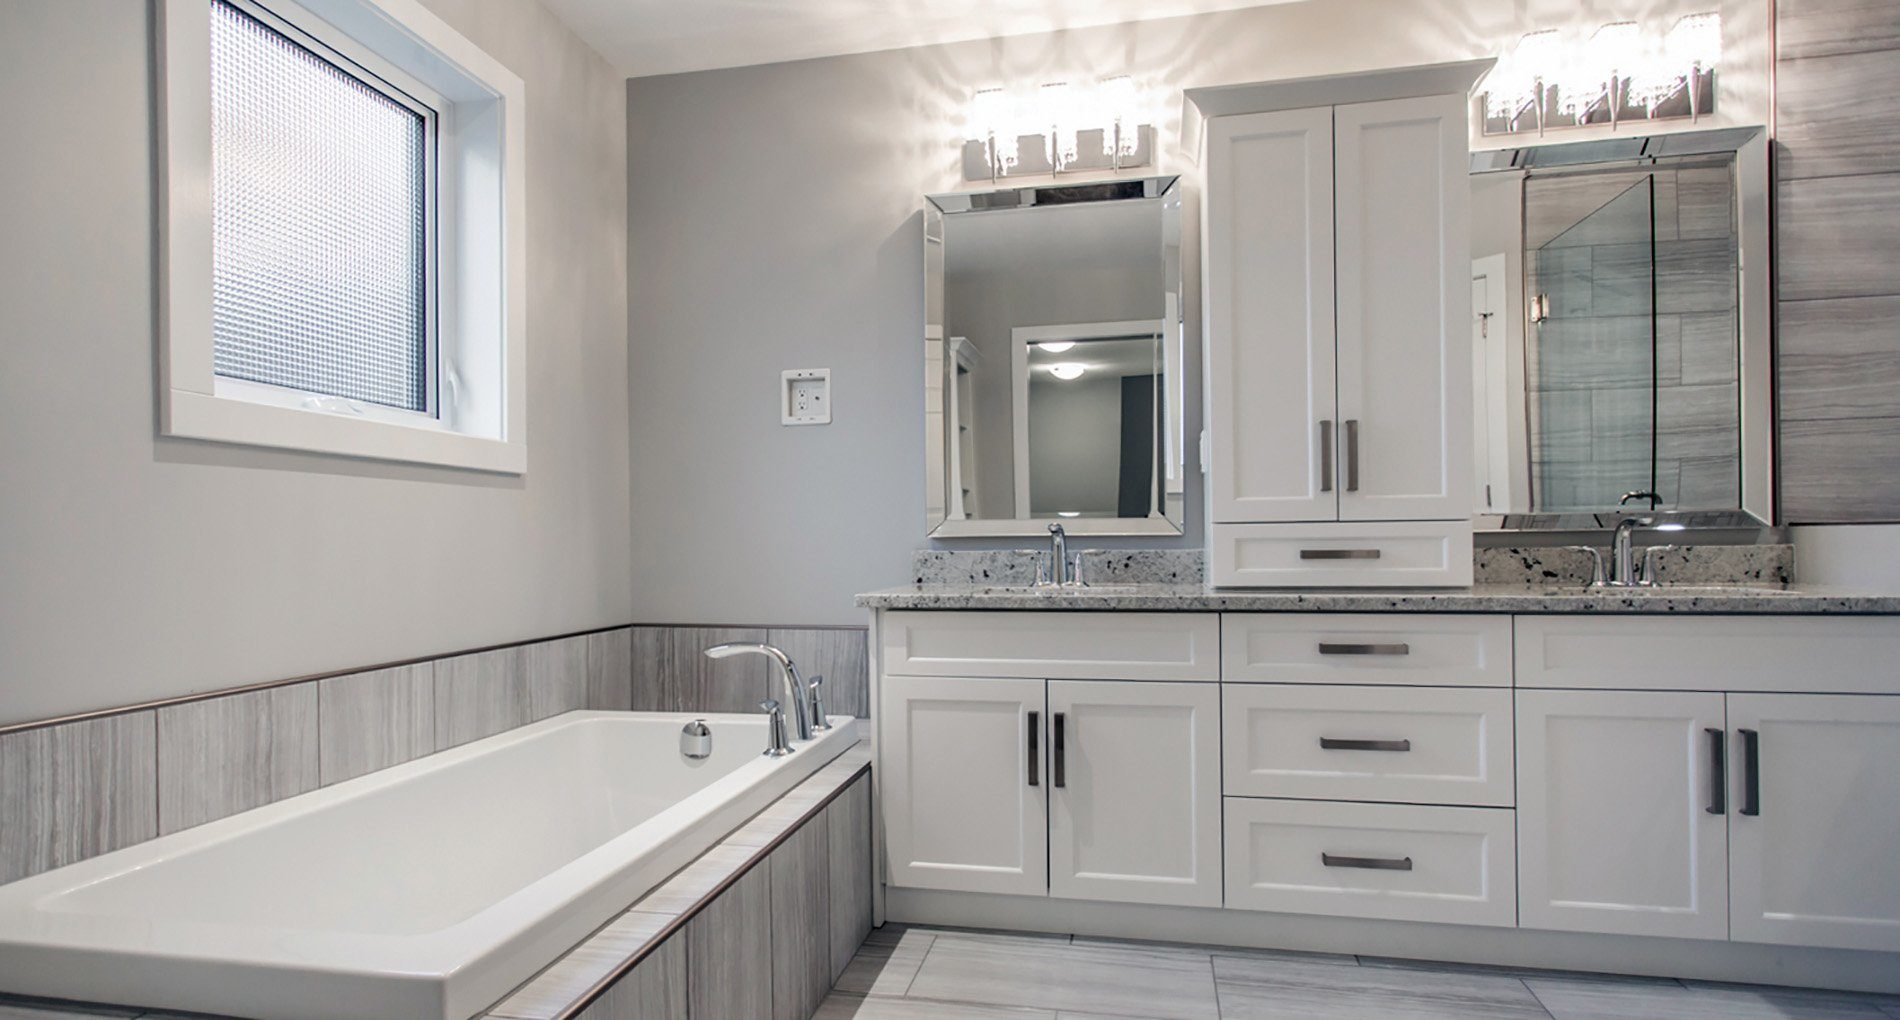 bathroom-renovation-regina-2027WindsorPlace-slider-1900x1020.jpg (1900×1020)